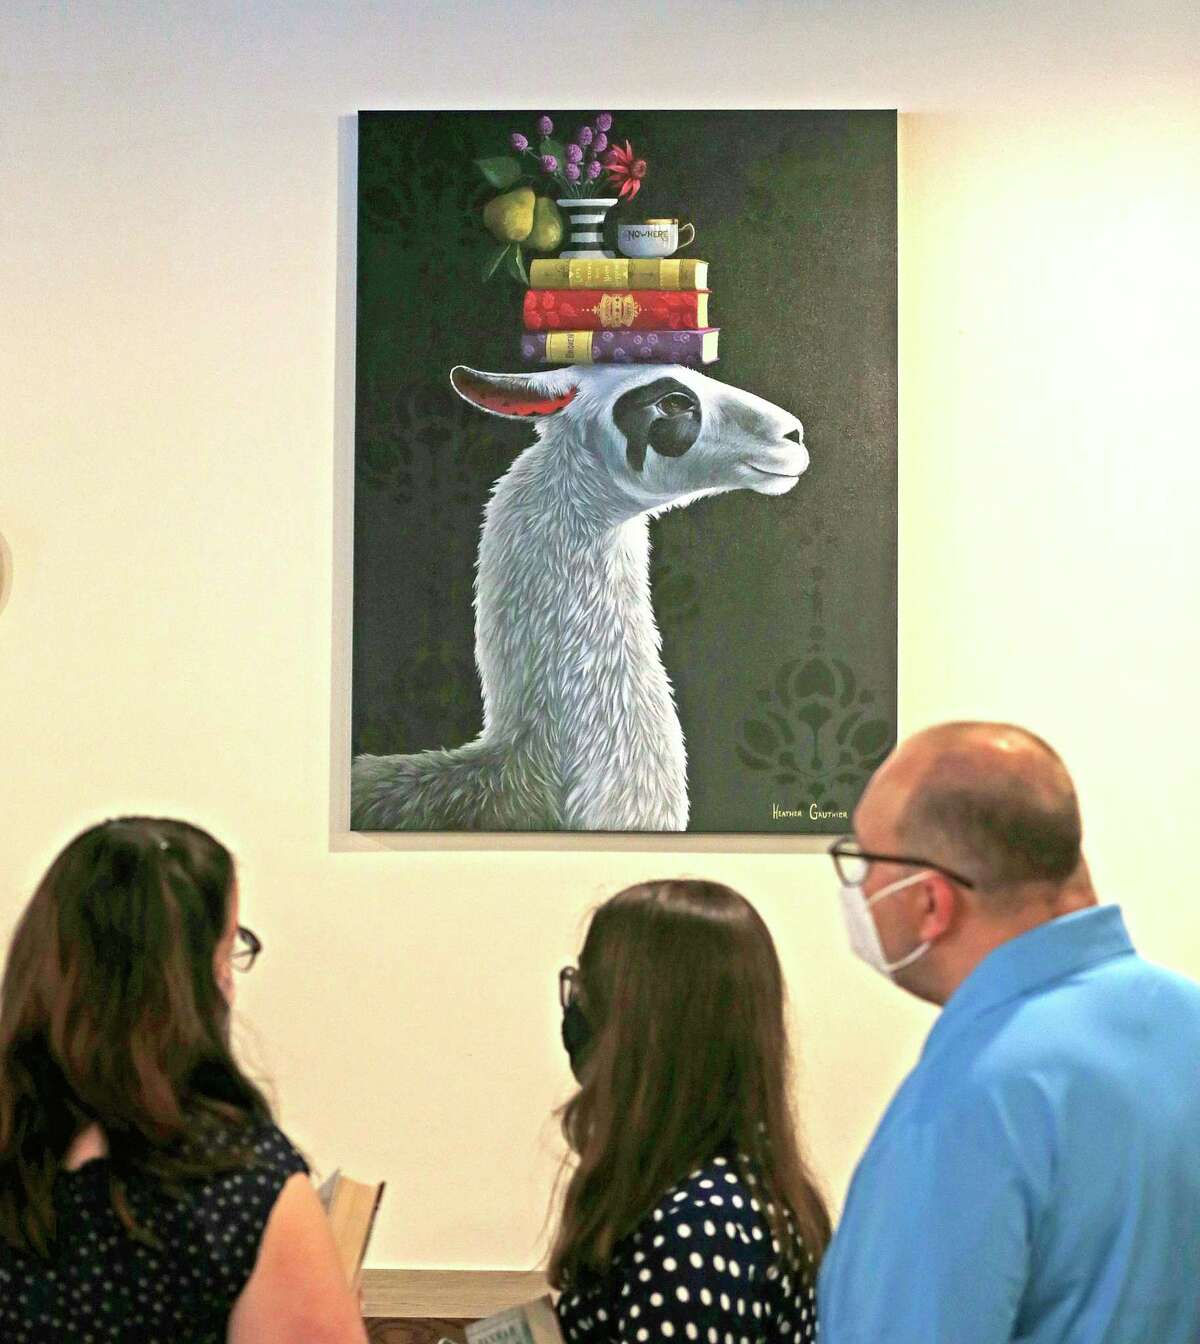 Guest at Nowhere Bookshop can observe many art works displayed at the first from-the-ground-up bookstore to open in San Antonio in decades and it hopes to attract crowds with a bar serving alcohol, dedicated areas for author appearances and plenty of reading nooks at Nowhere Bookshop 5154 Broadway on Saturday, June 26. 2021.